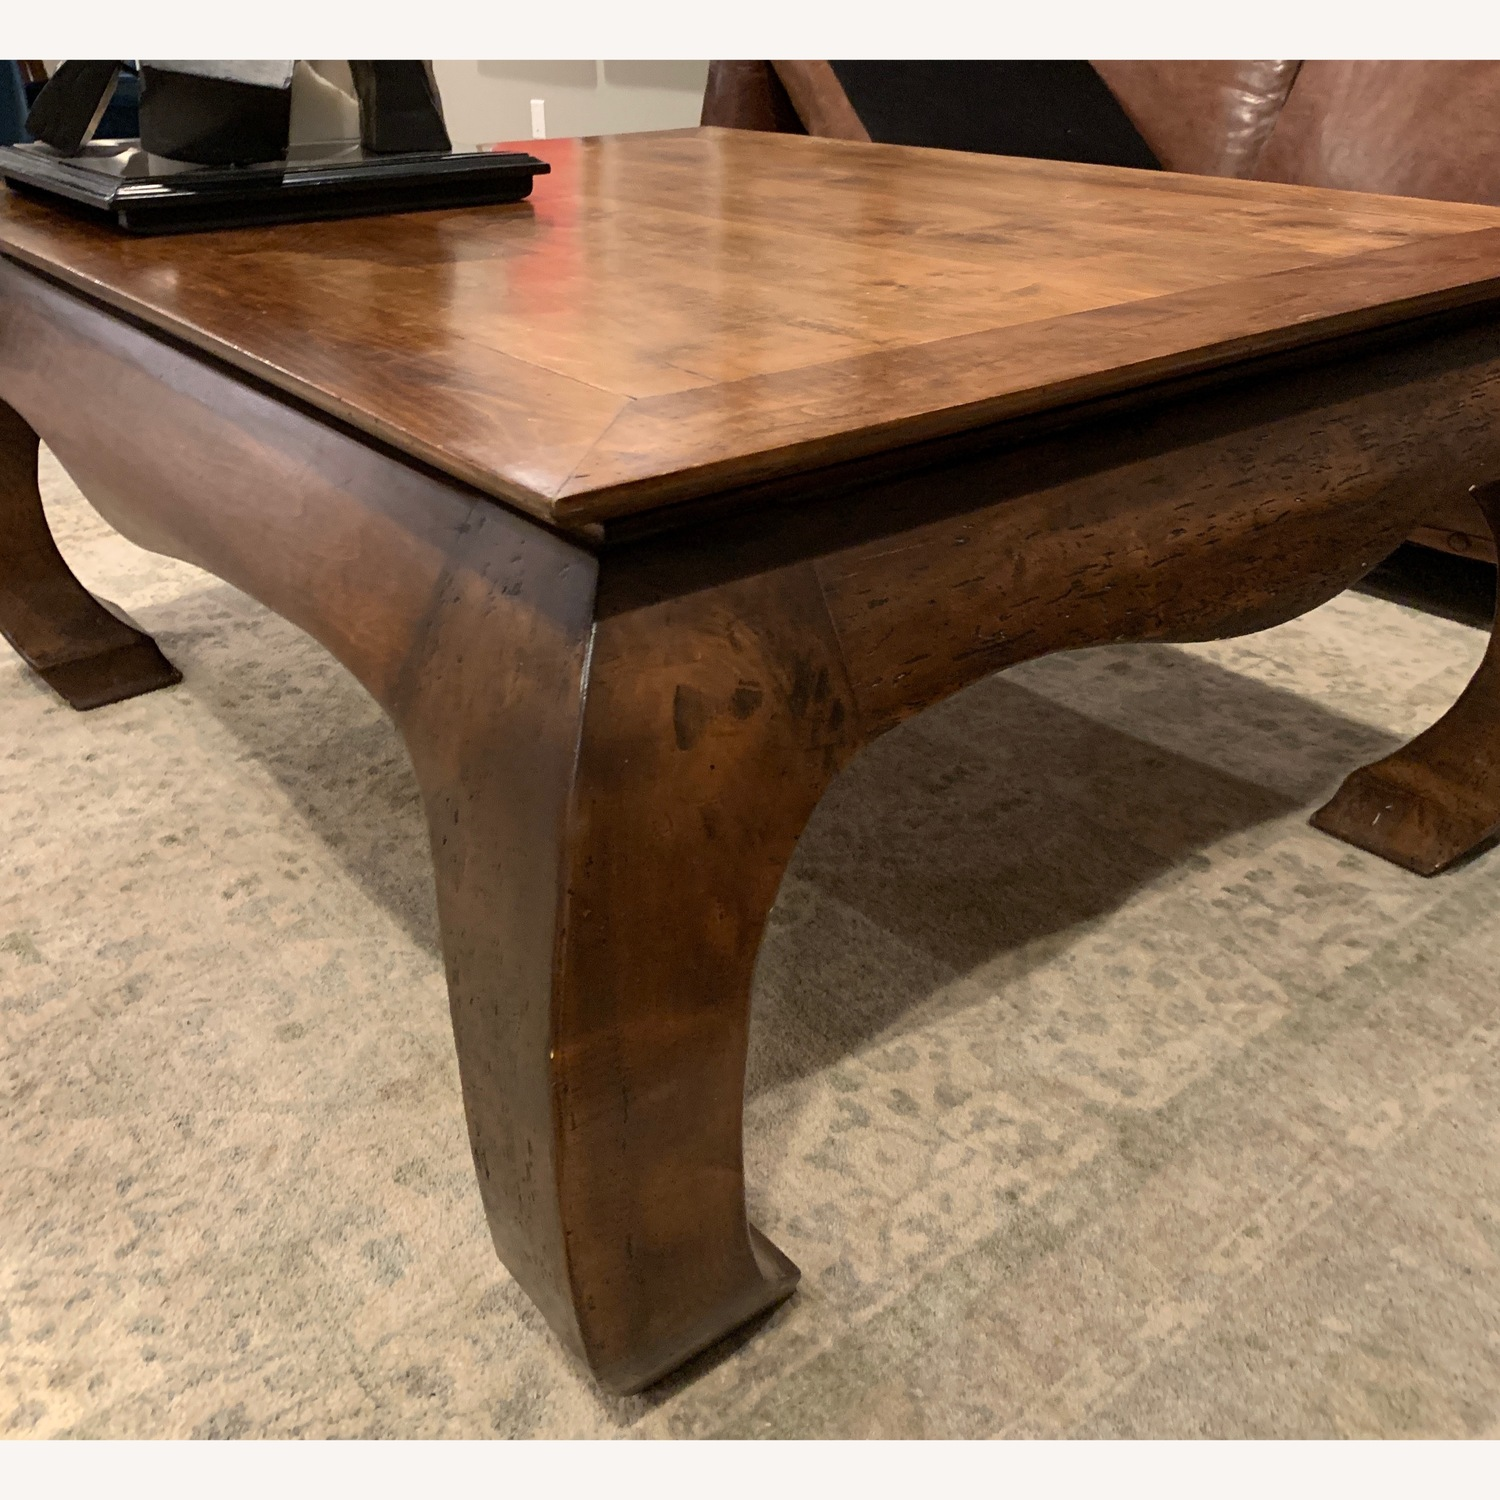 Ralph Lauren style hand-crafted maple coffee table